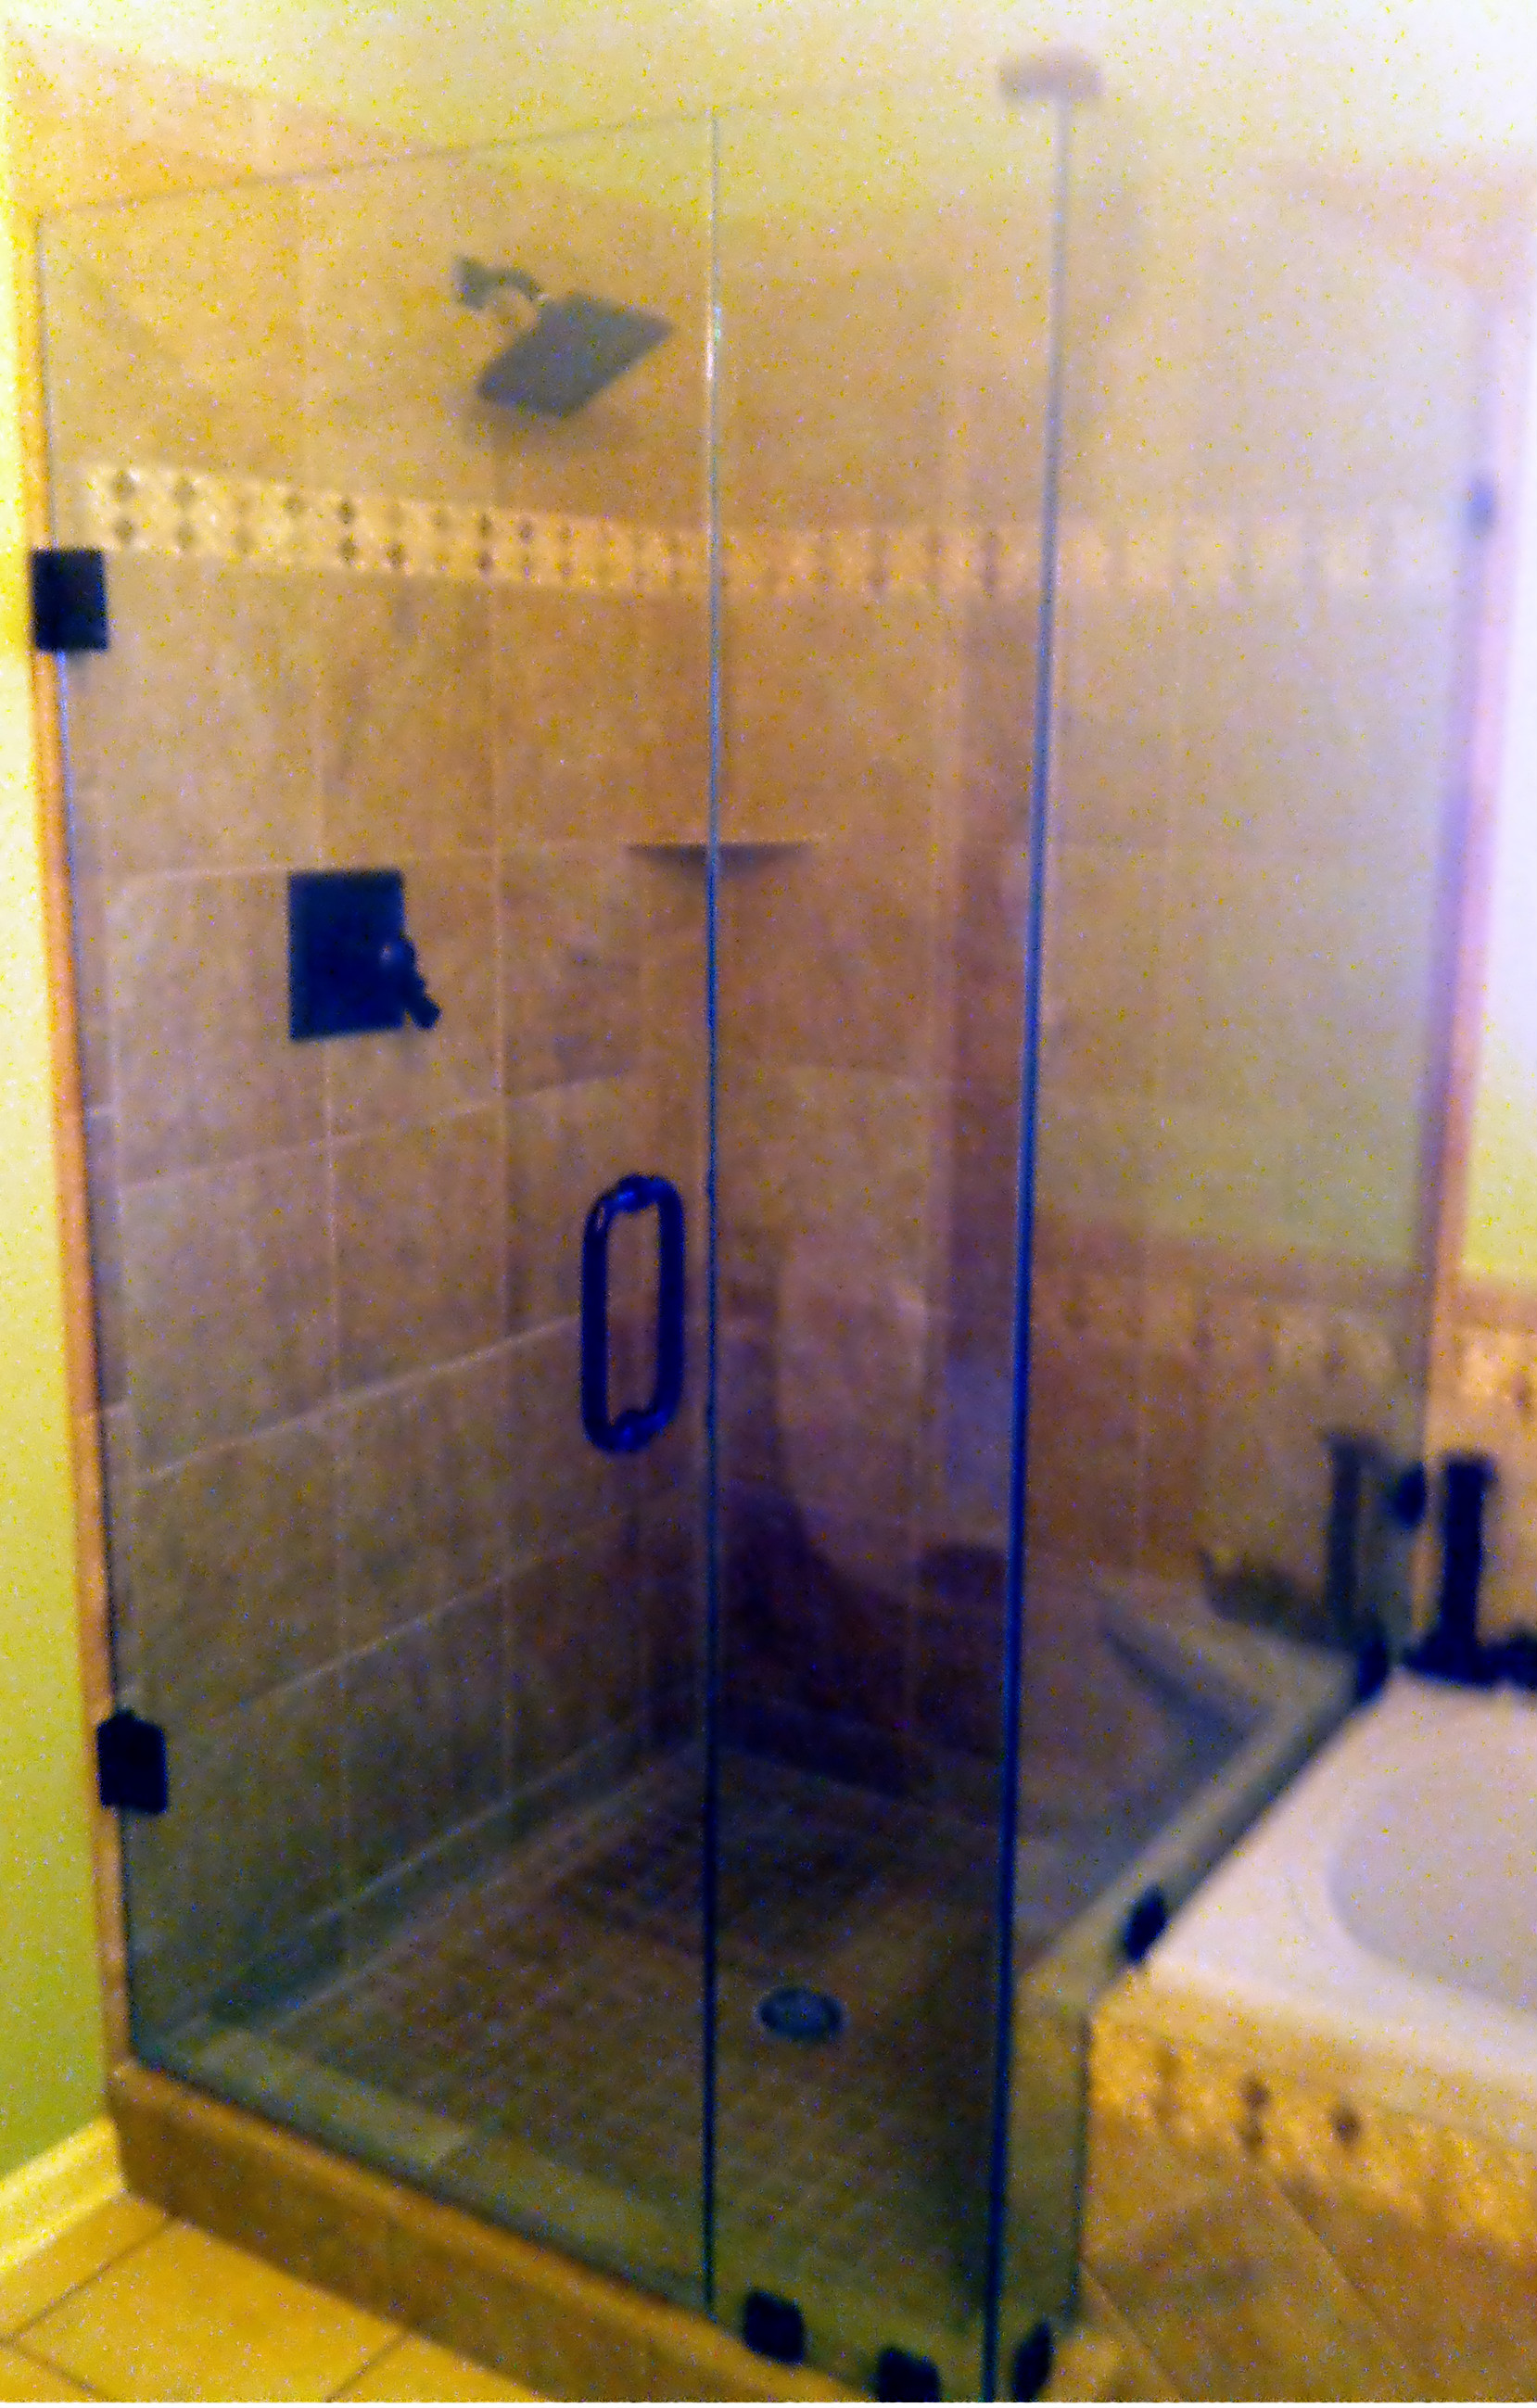 https://0201.nccdn.net/1_2/000/000/0a6/669/Shower-door-frameless-sidelite-and-return-ORB.JPG